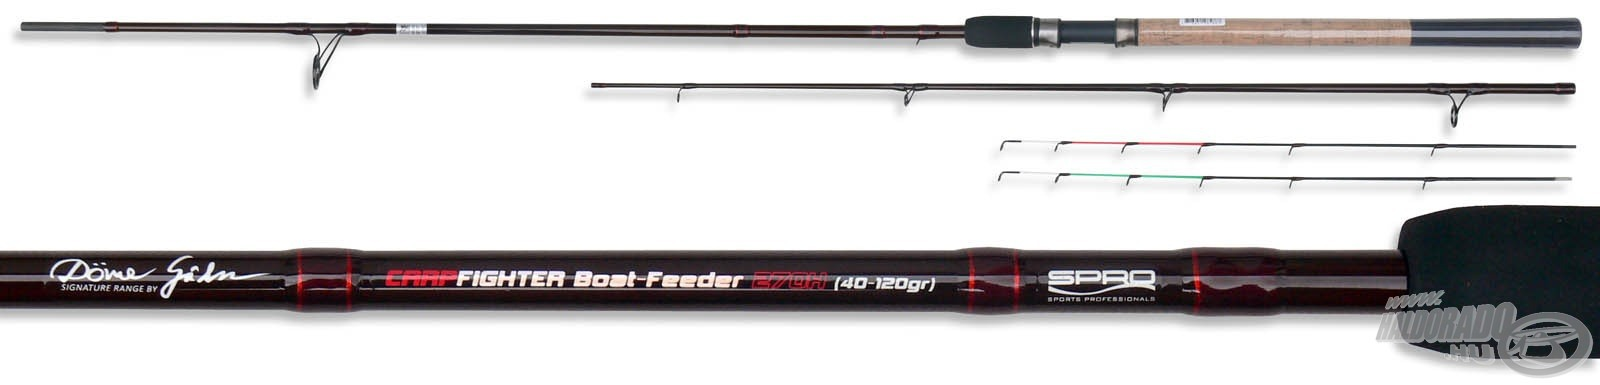 SPRO, Team, Feeder, Carp, Fighter, Boat, 300, -, by, D�me, G�bor, 13990Ft-t�l,